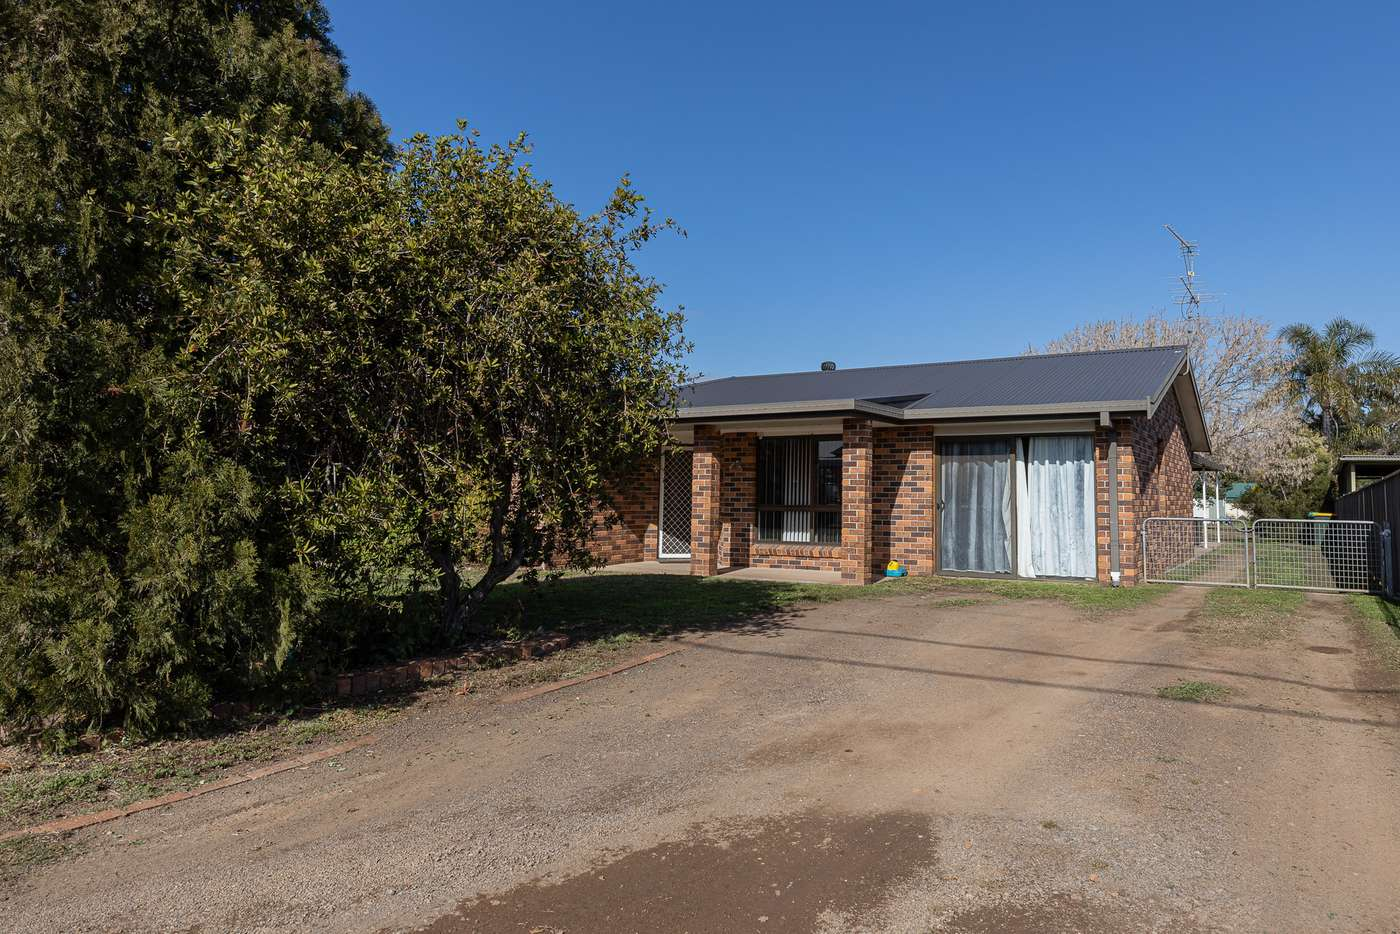 Main view of Homely house listing, 11 Turtle Street, Denman NSW 2328